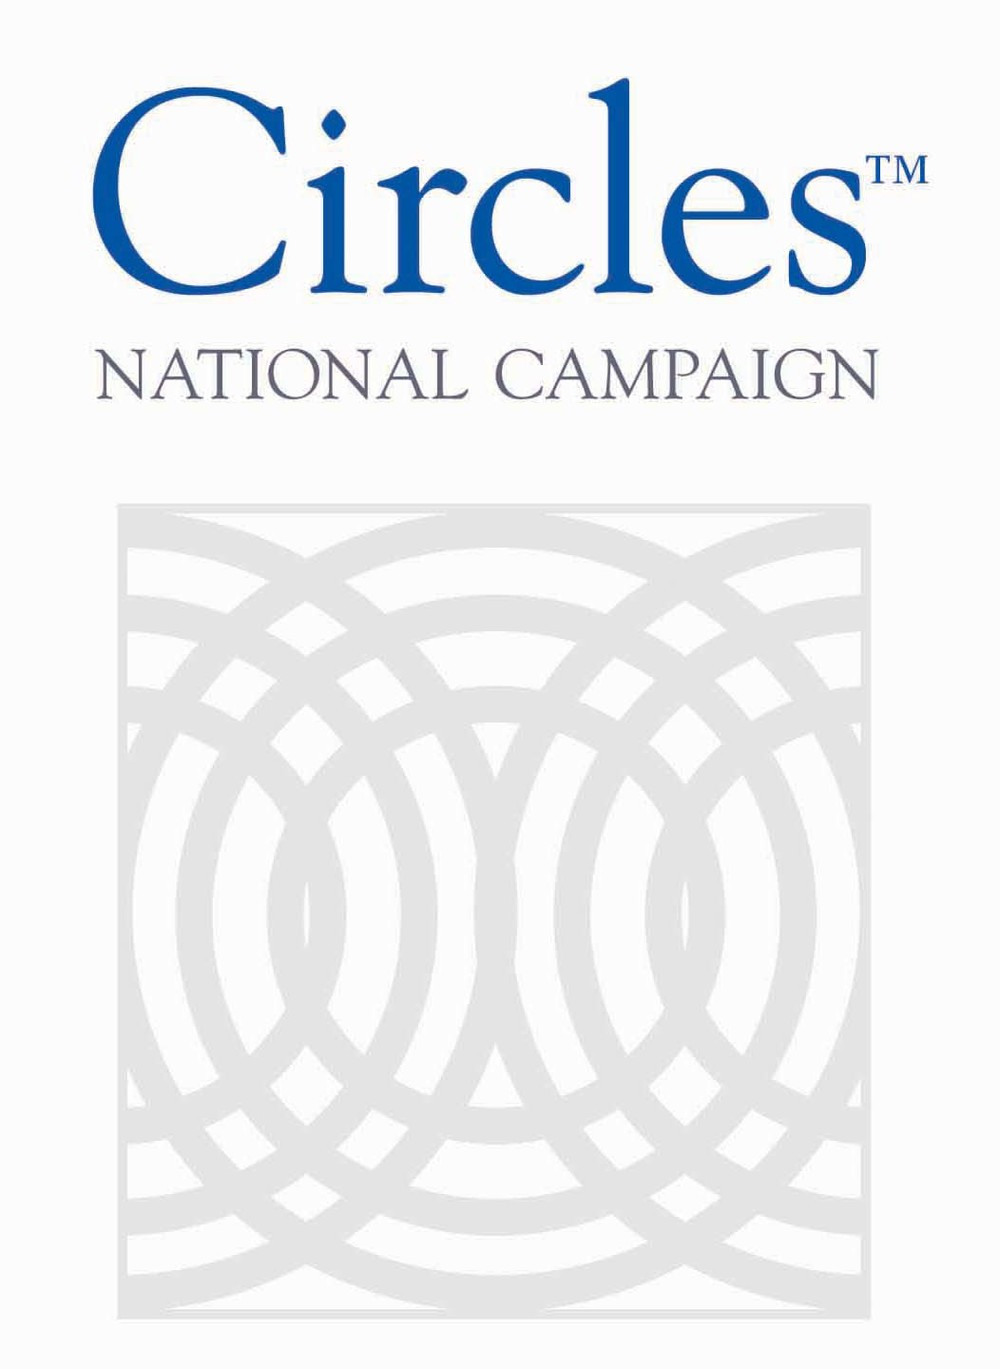 CirclesNationalCamp_logo.jpg